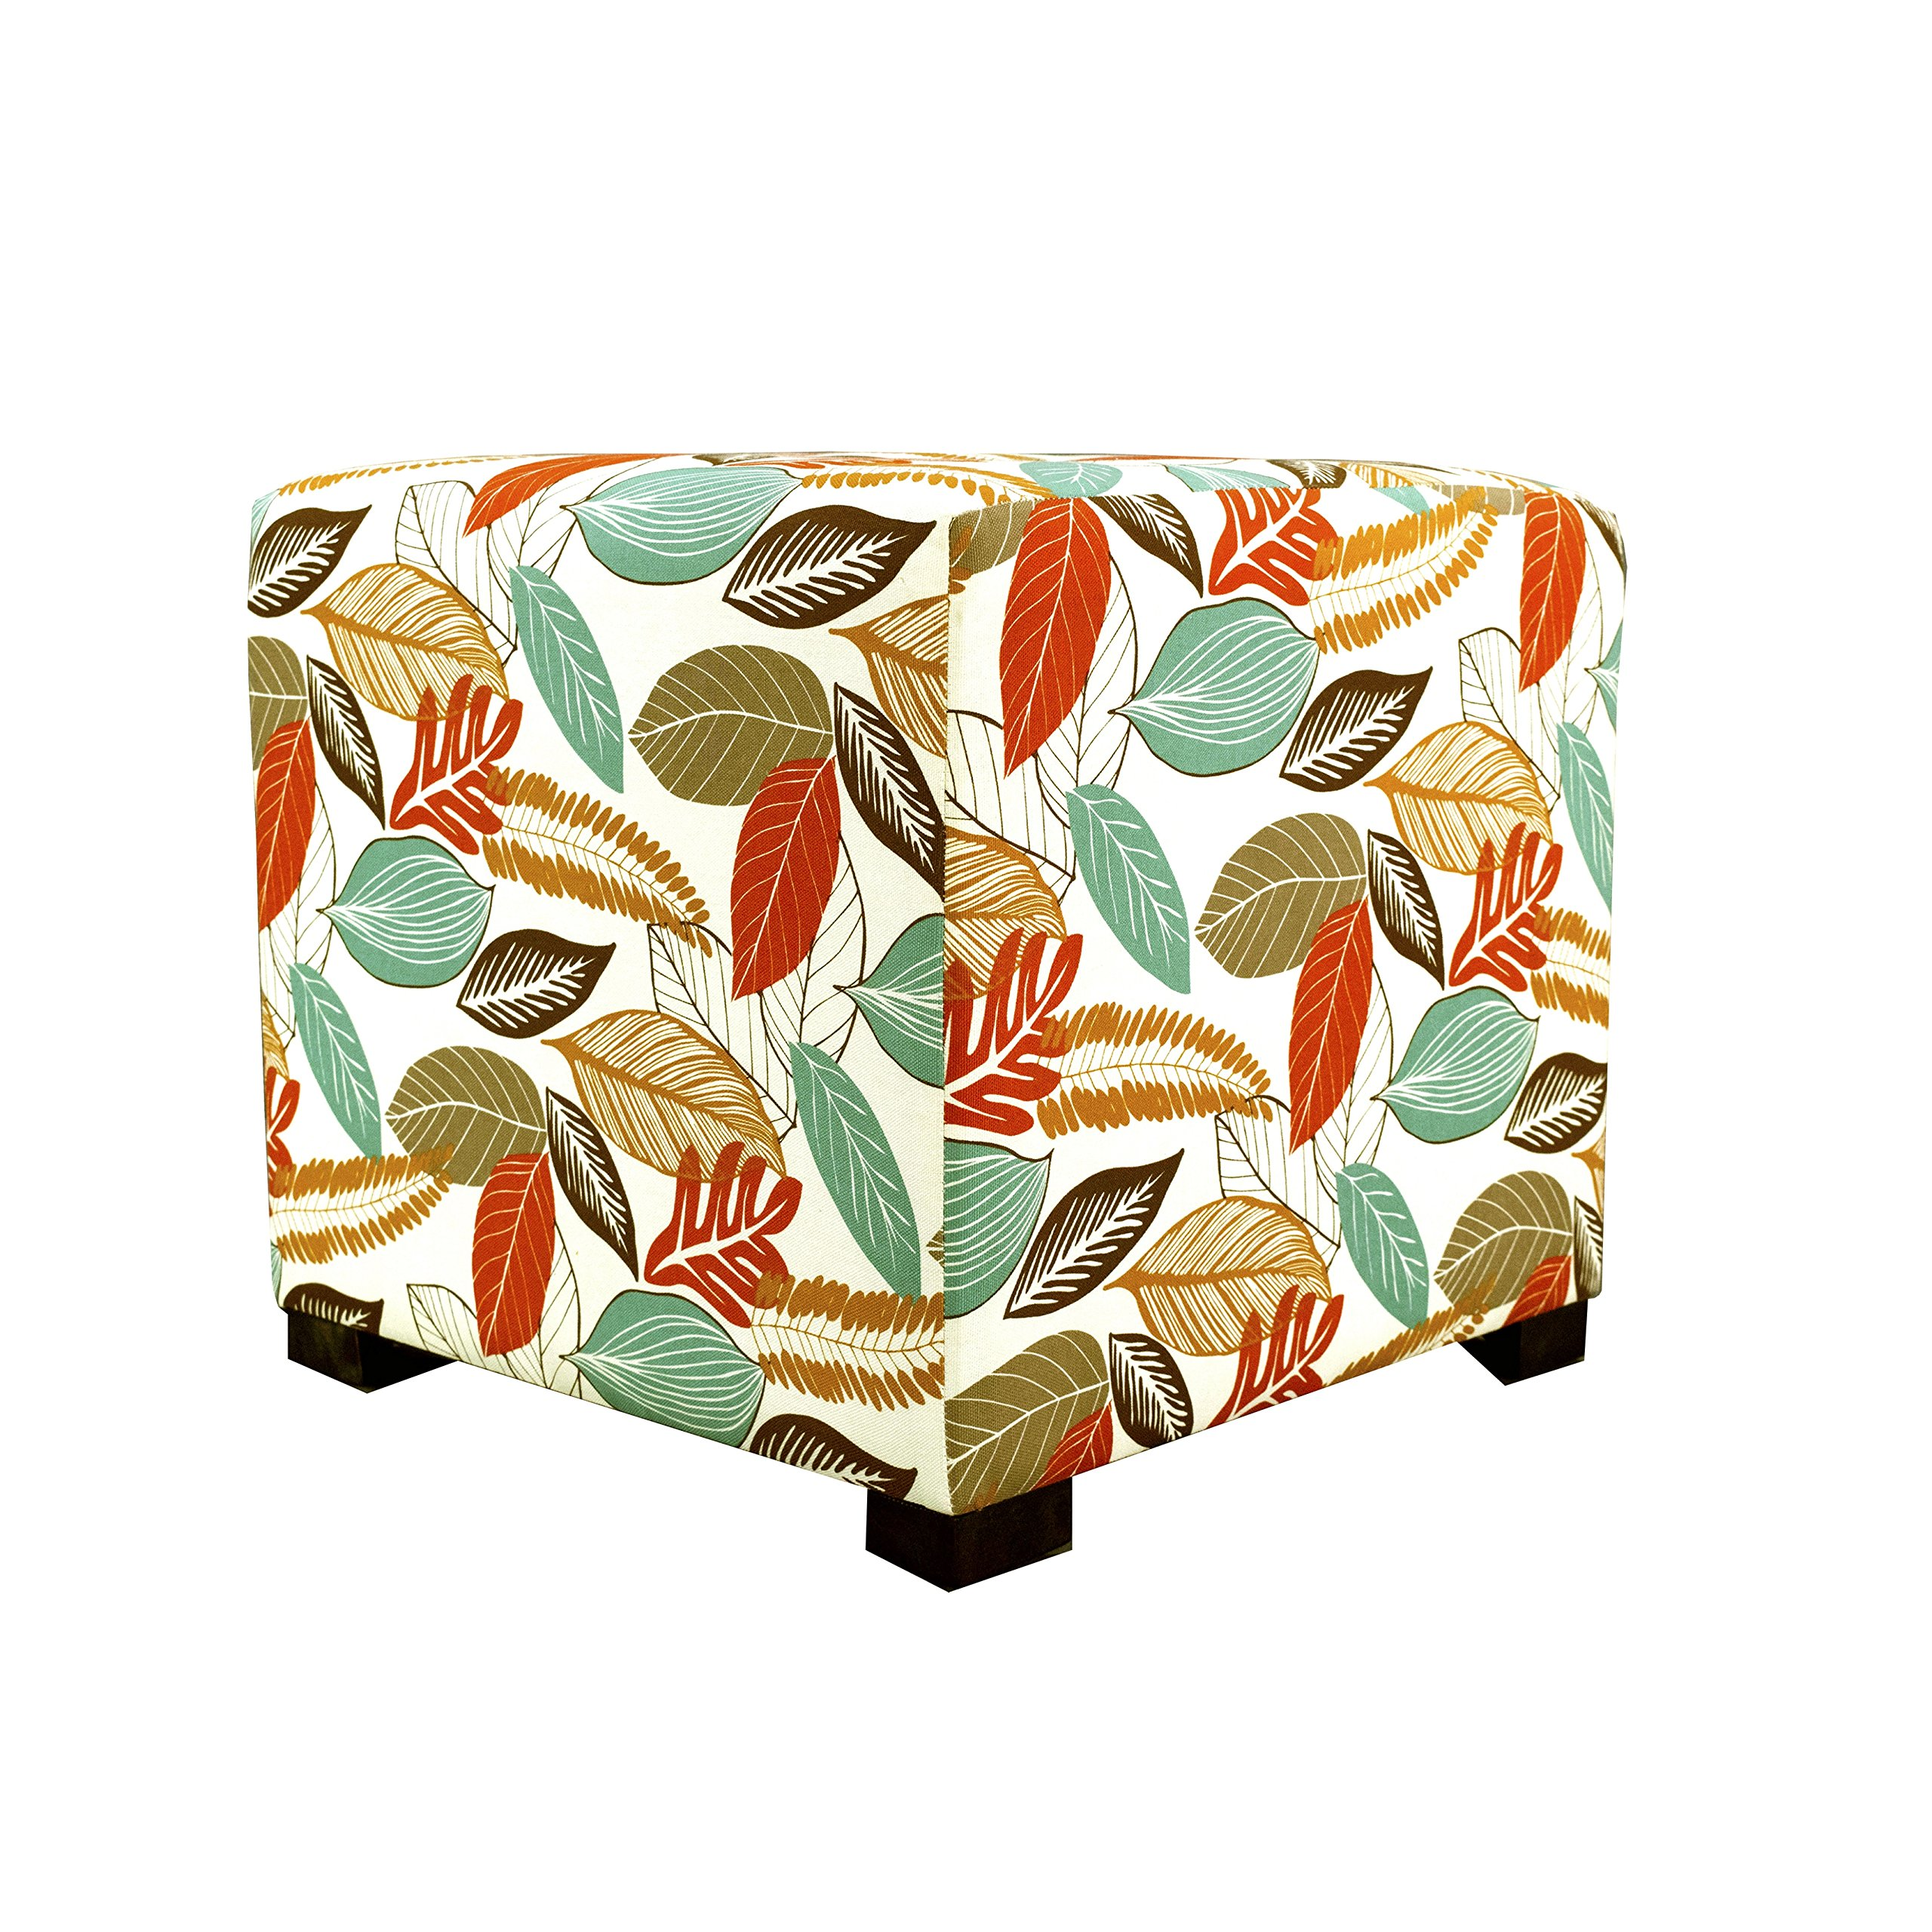 MJL Furniture Designs Merton Collection, Fabric Upholstered Modern Cube Foot Rest Ottoman with 4 Button Tufting, Floral Foliage Series, Driftwood by MJL Furniture Designs (Image #5)